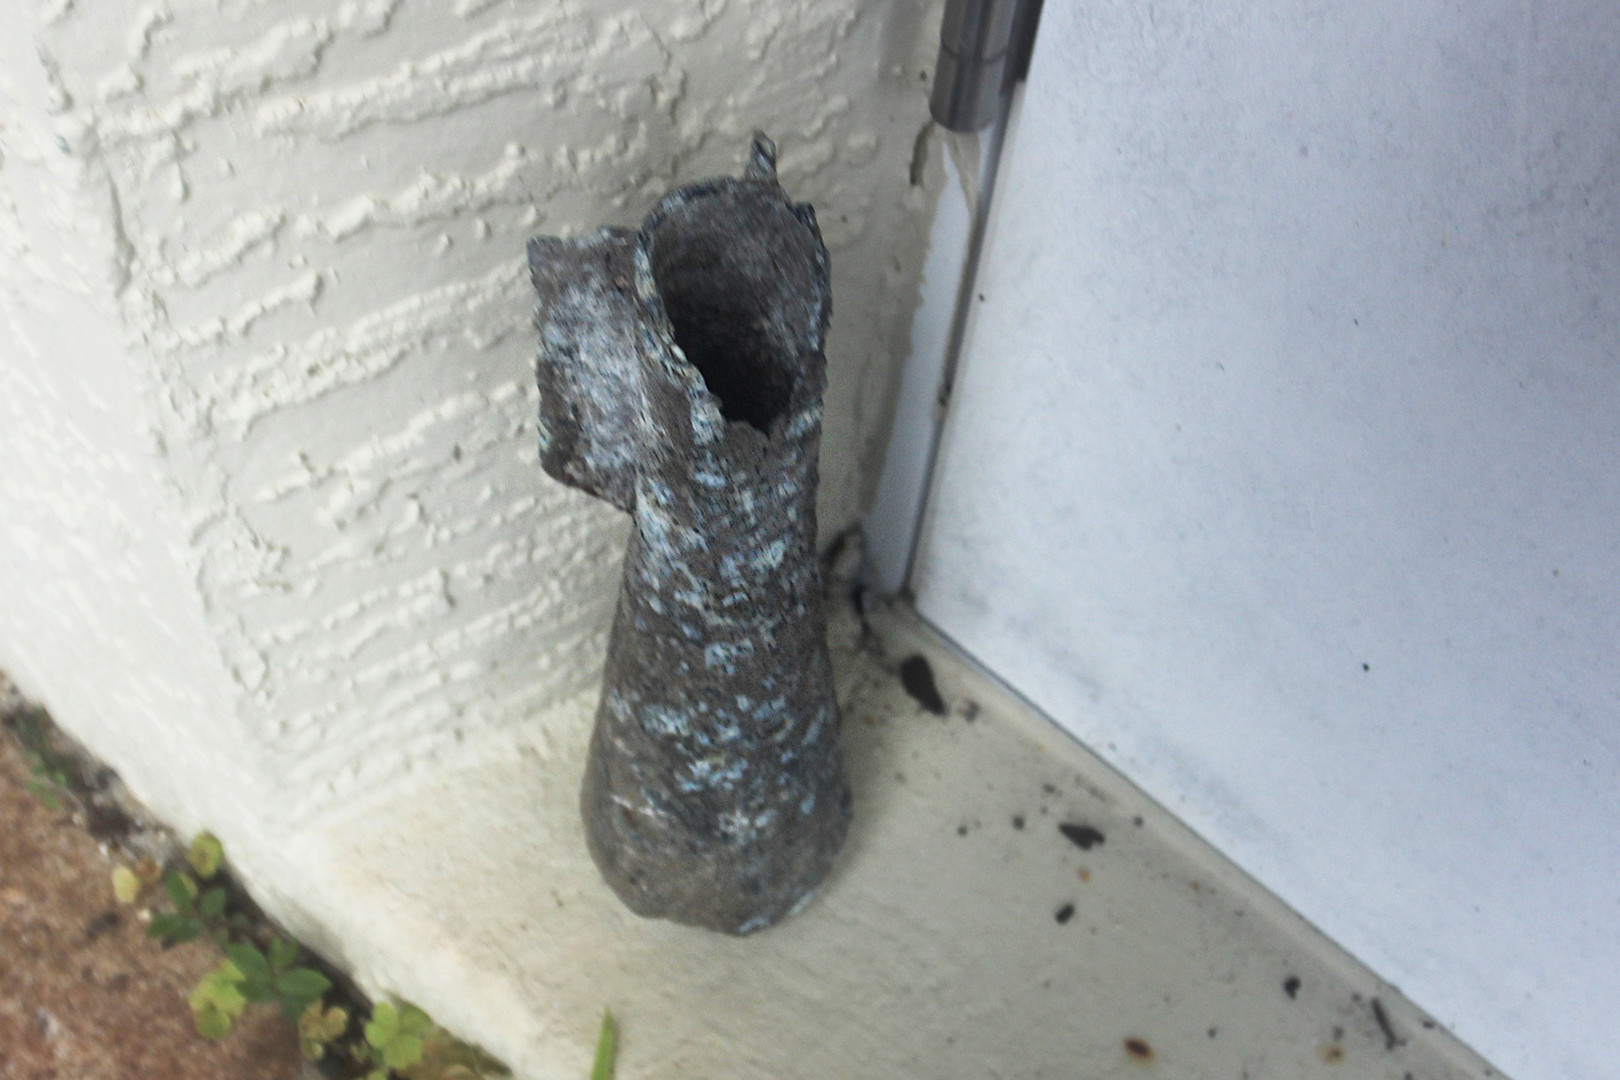 Mortar found in South Patrick Shores tox